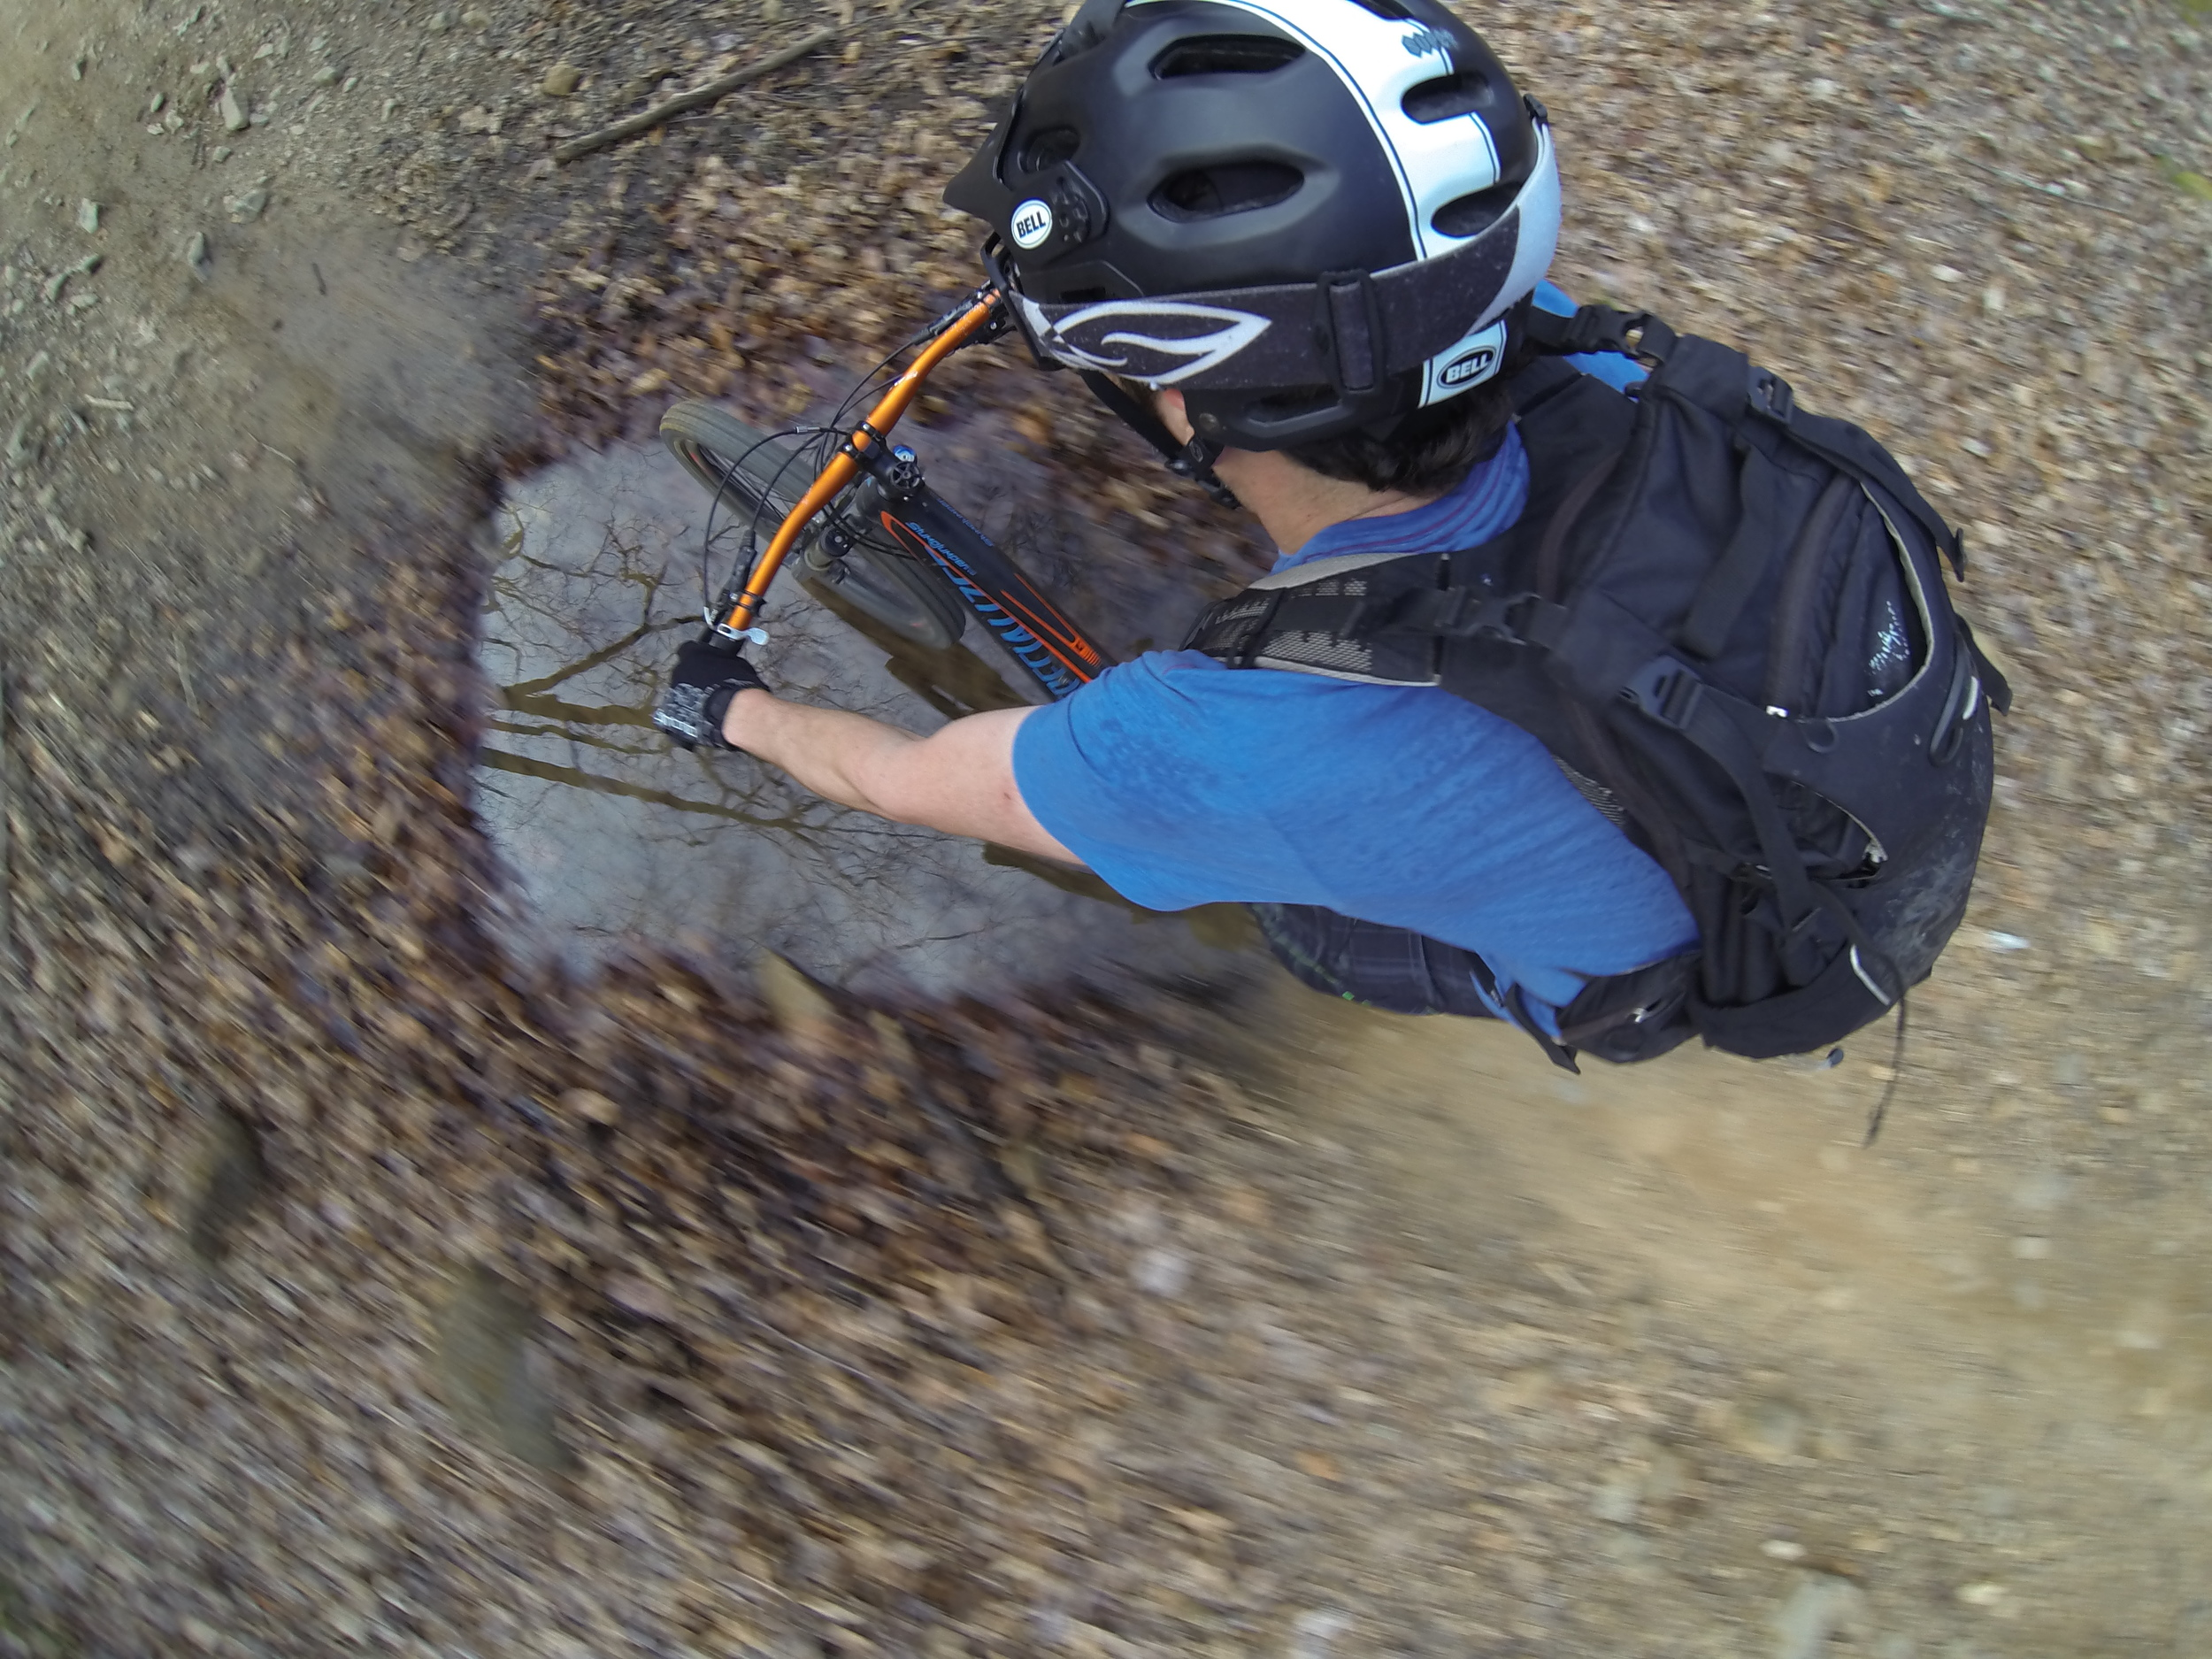 Bent Creek Biking